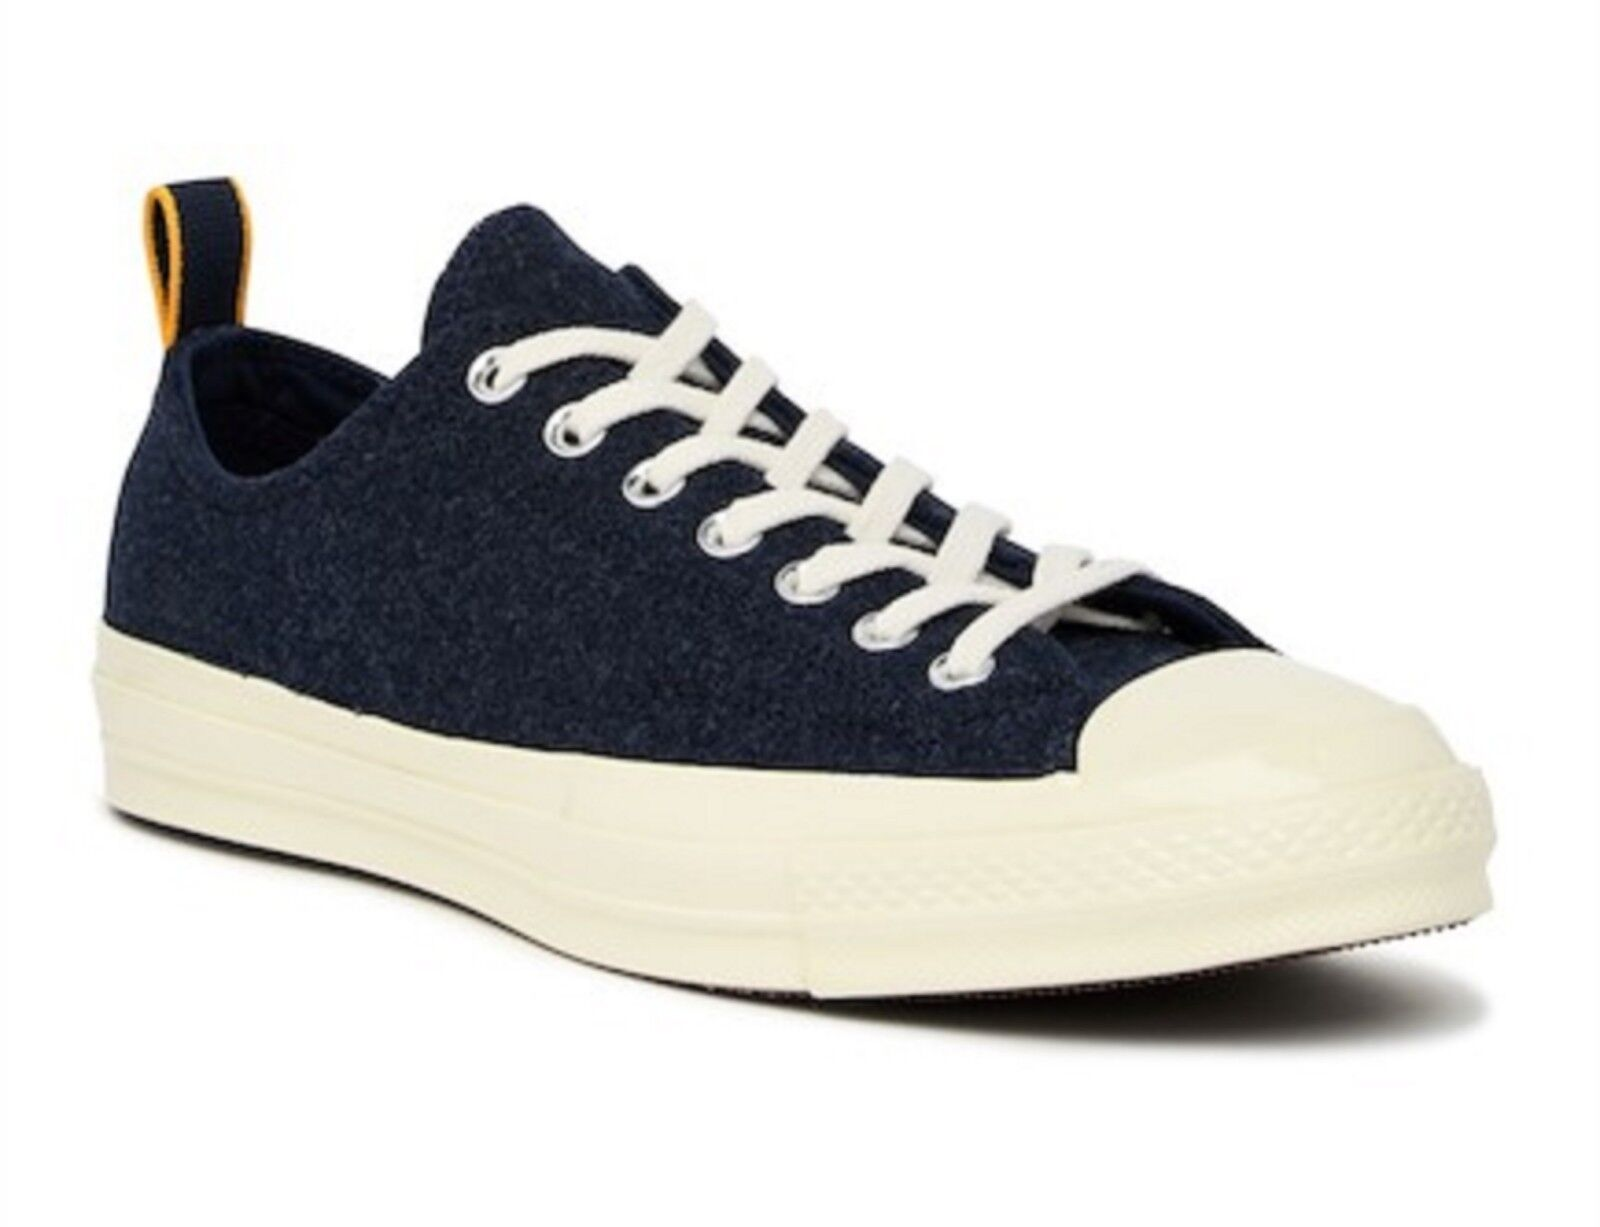 Converse Chuck Taylor All Star 70 OX Low Midnight Navy Low OX Top Sneaker 157590C 898dea